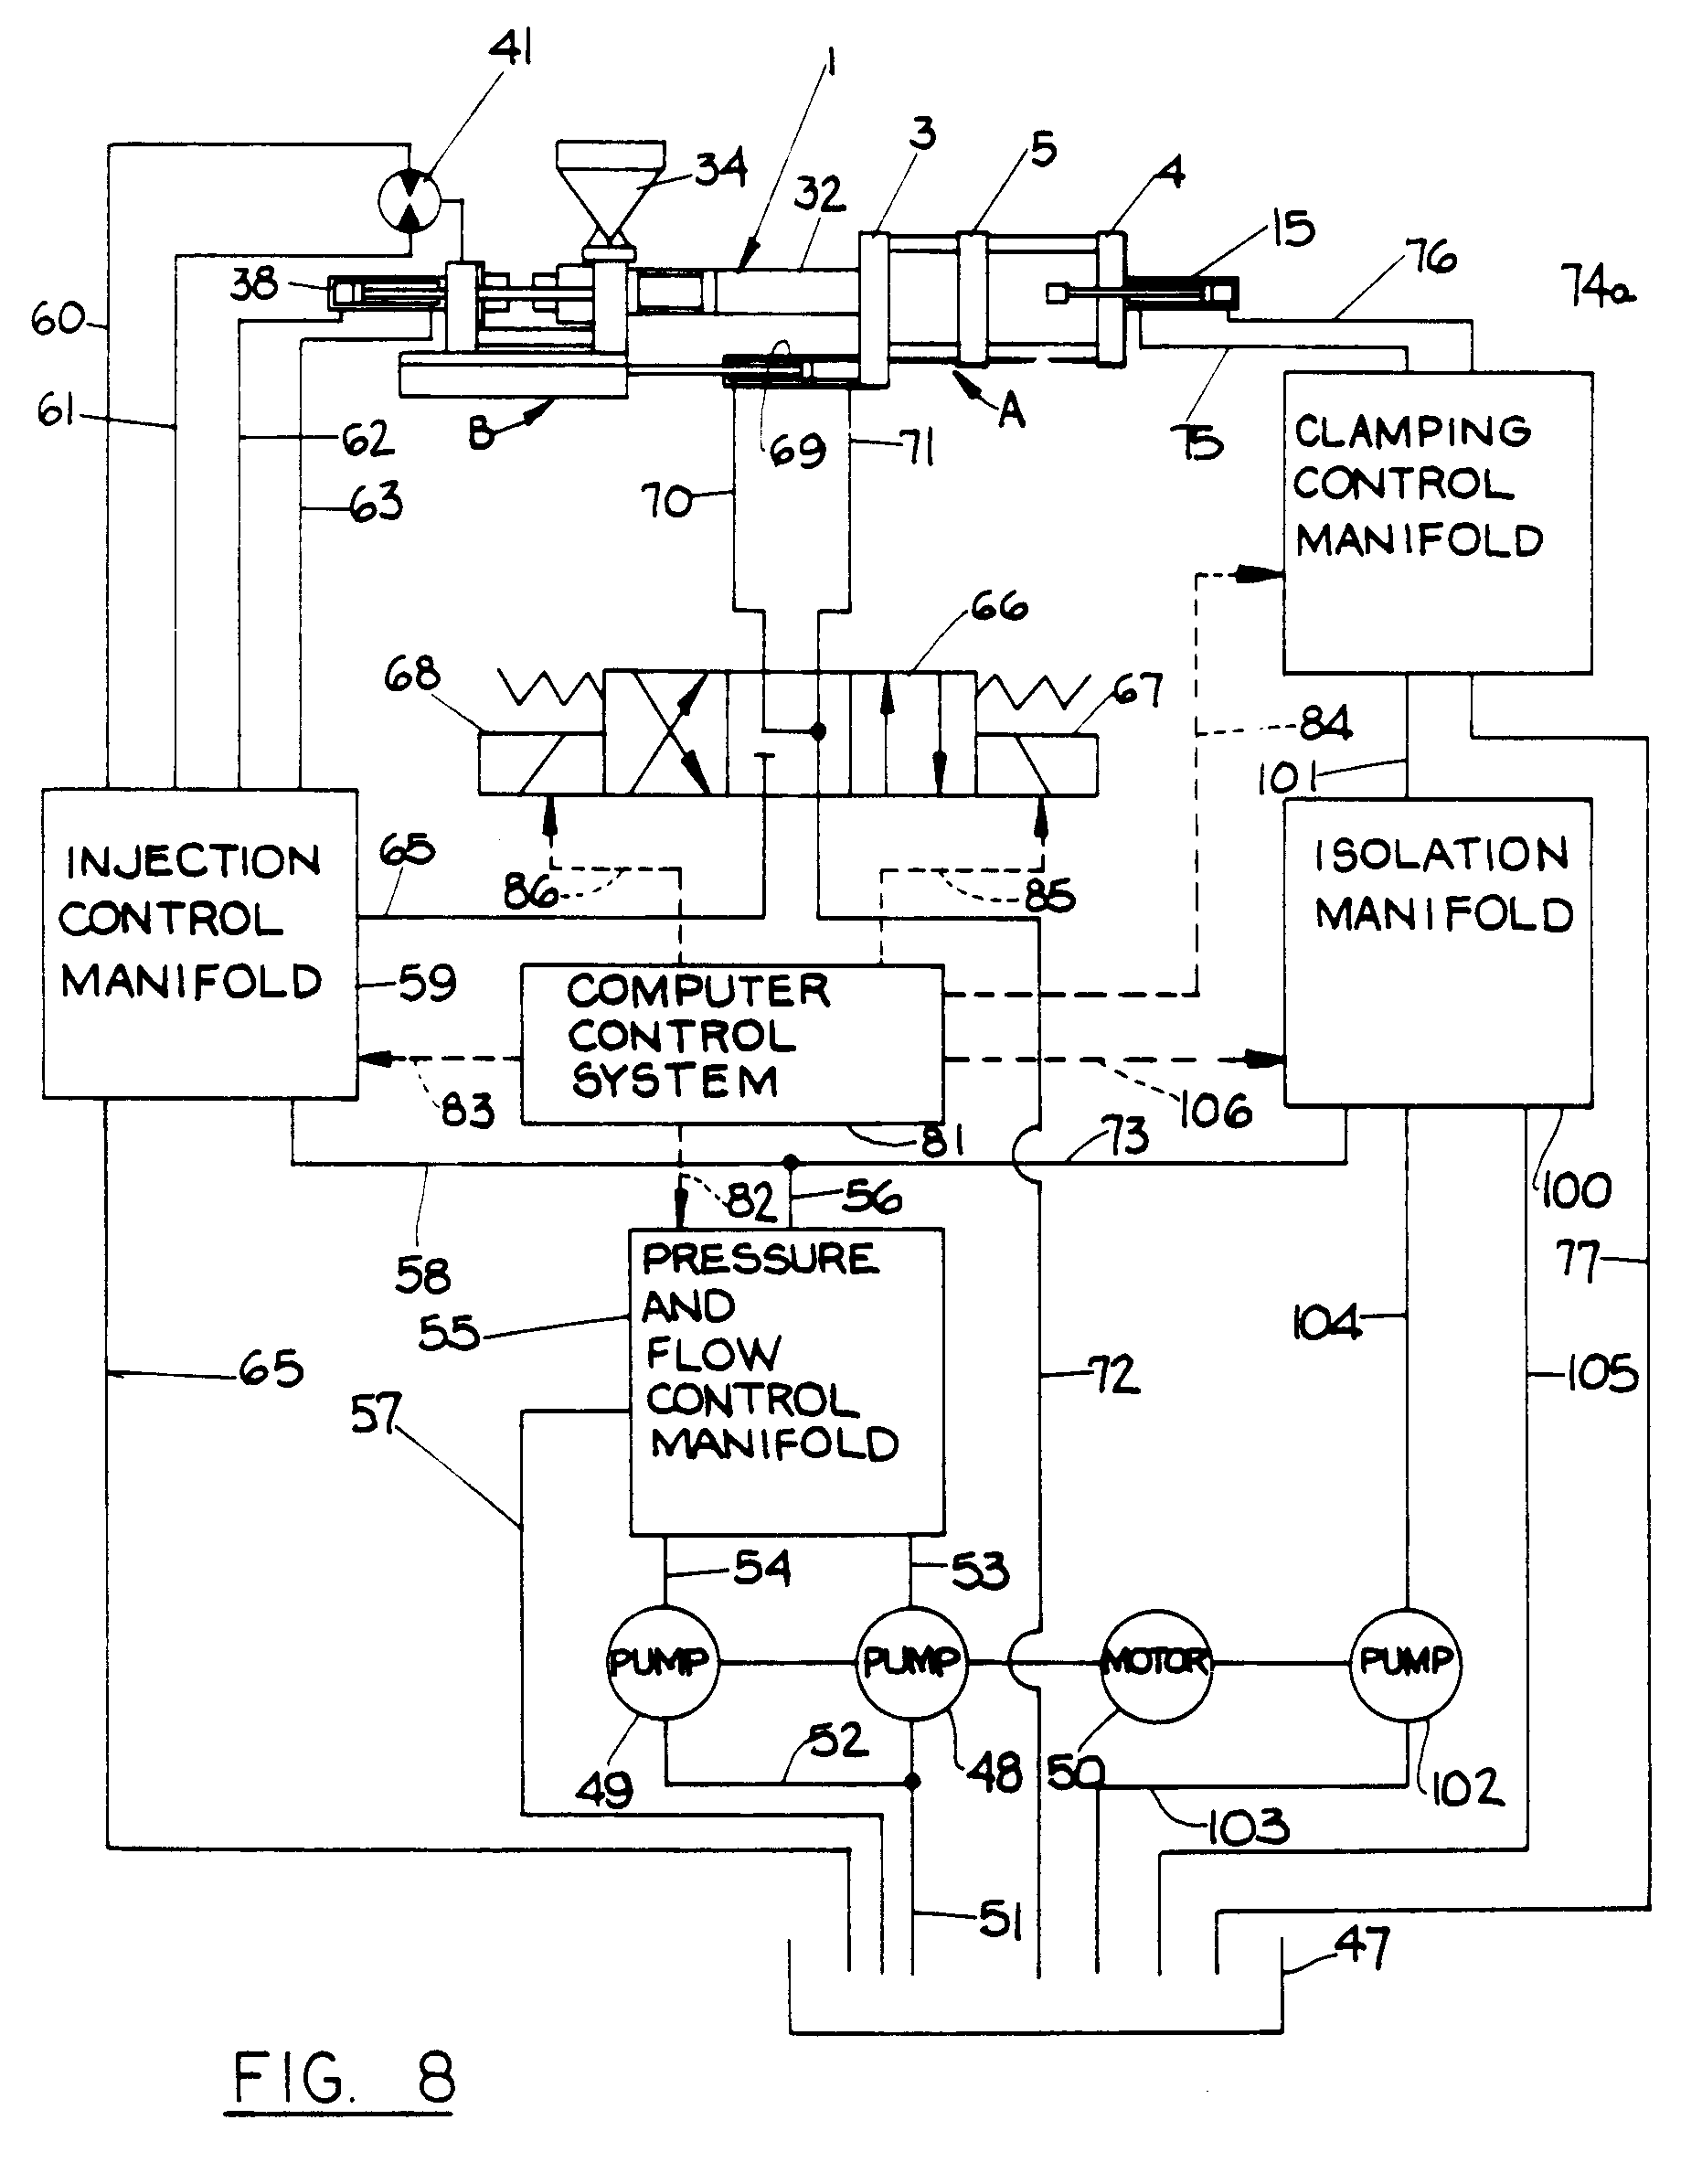 imgf0005 hydraulic circuit diagram for injection moulding machine circuit injection molding machine wiring diagram at gsmportal.co